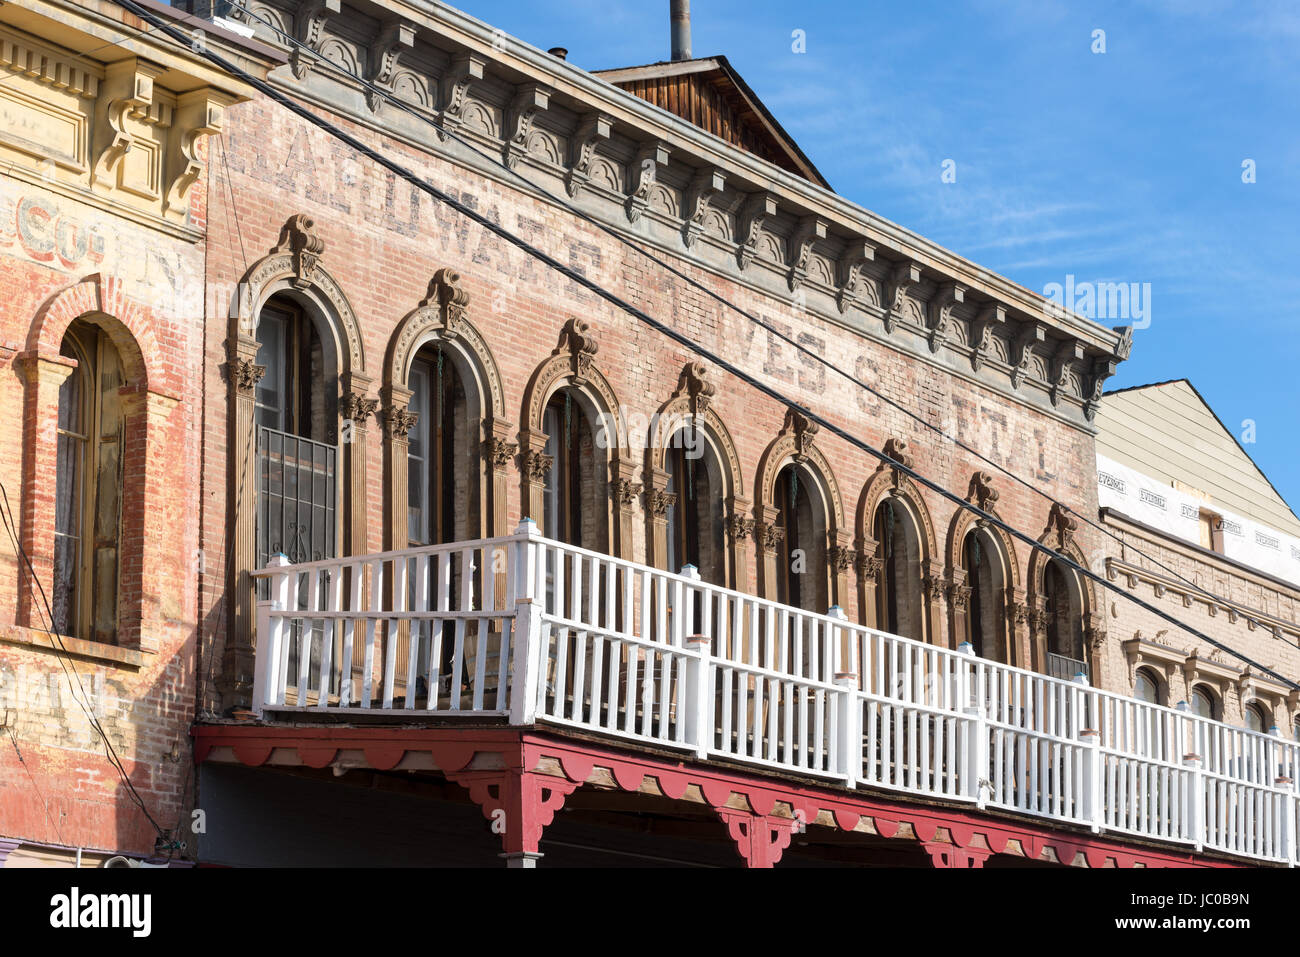 Second story of an old building in the historic mining town of Virginia City, Nevada. - Stock Image